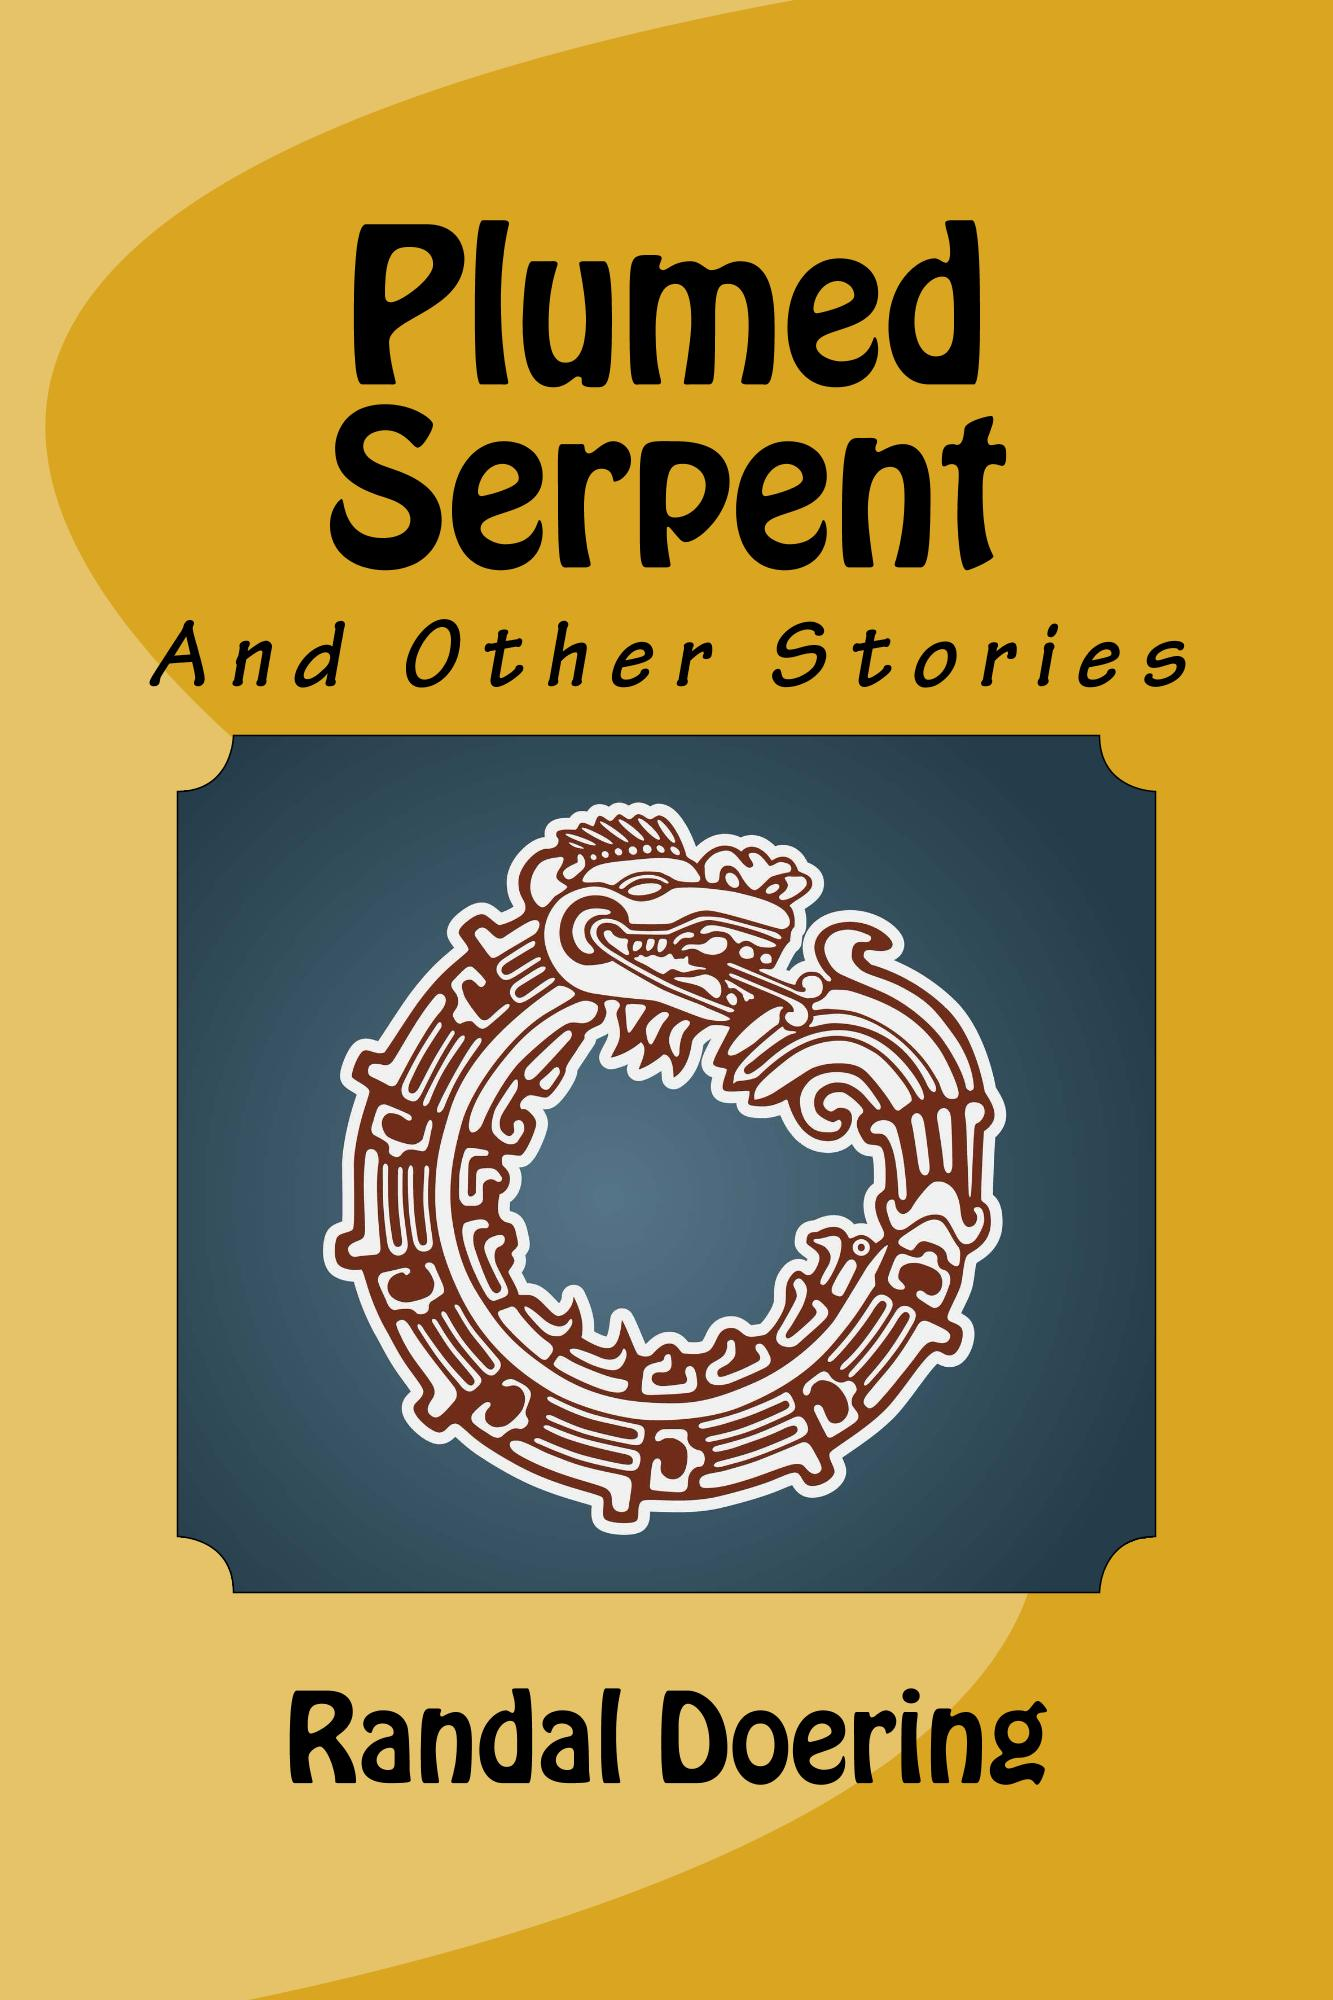 Plumed Serpent and Other Stories